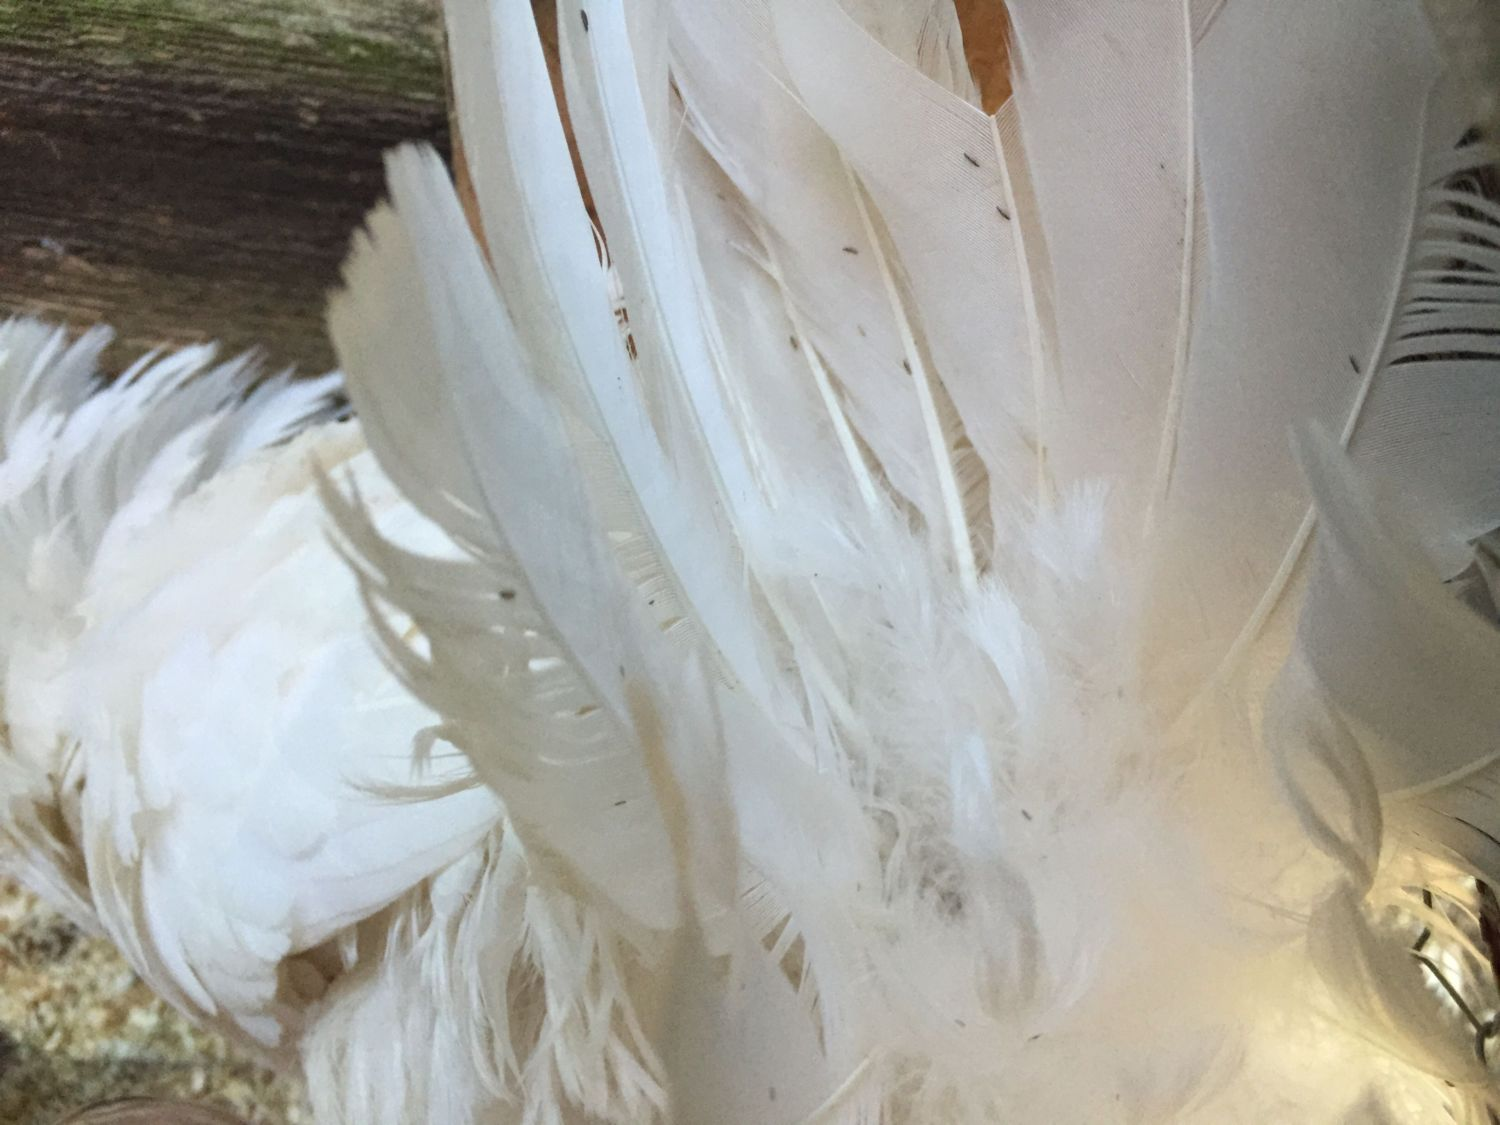 how to get rid of mites and lice on chickens